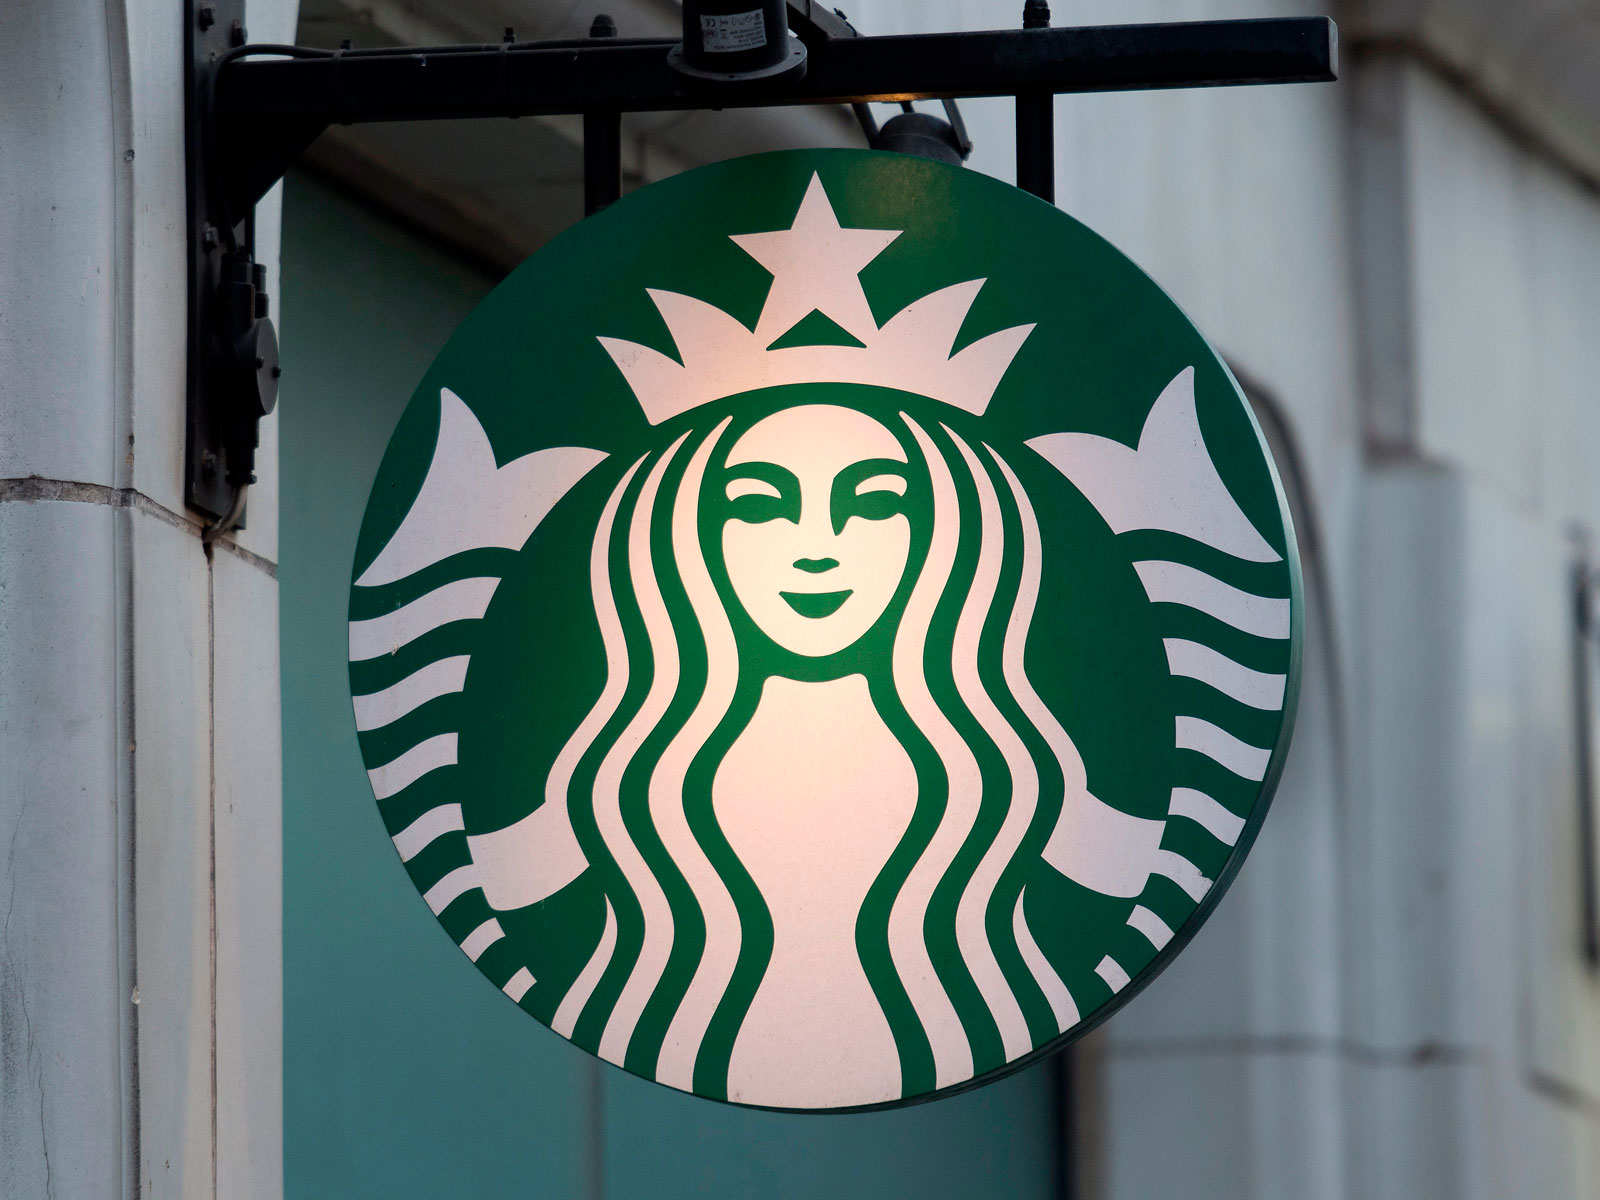 starbucks-training-FT-BLOG0418.jpg